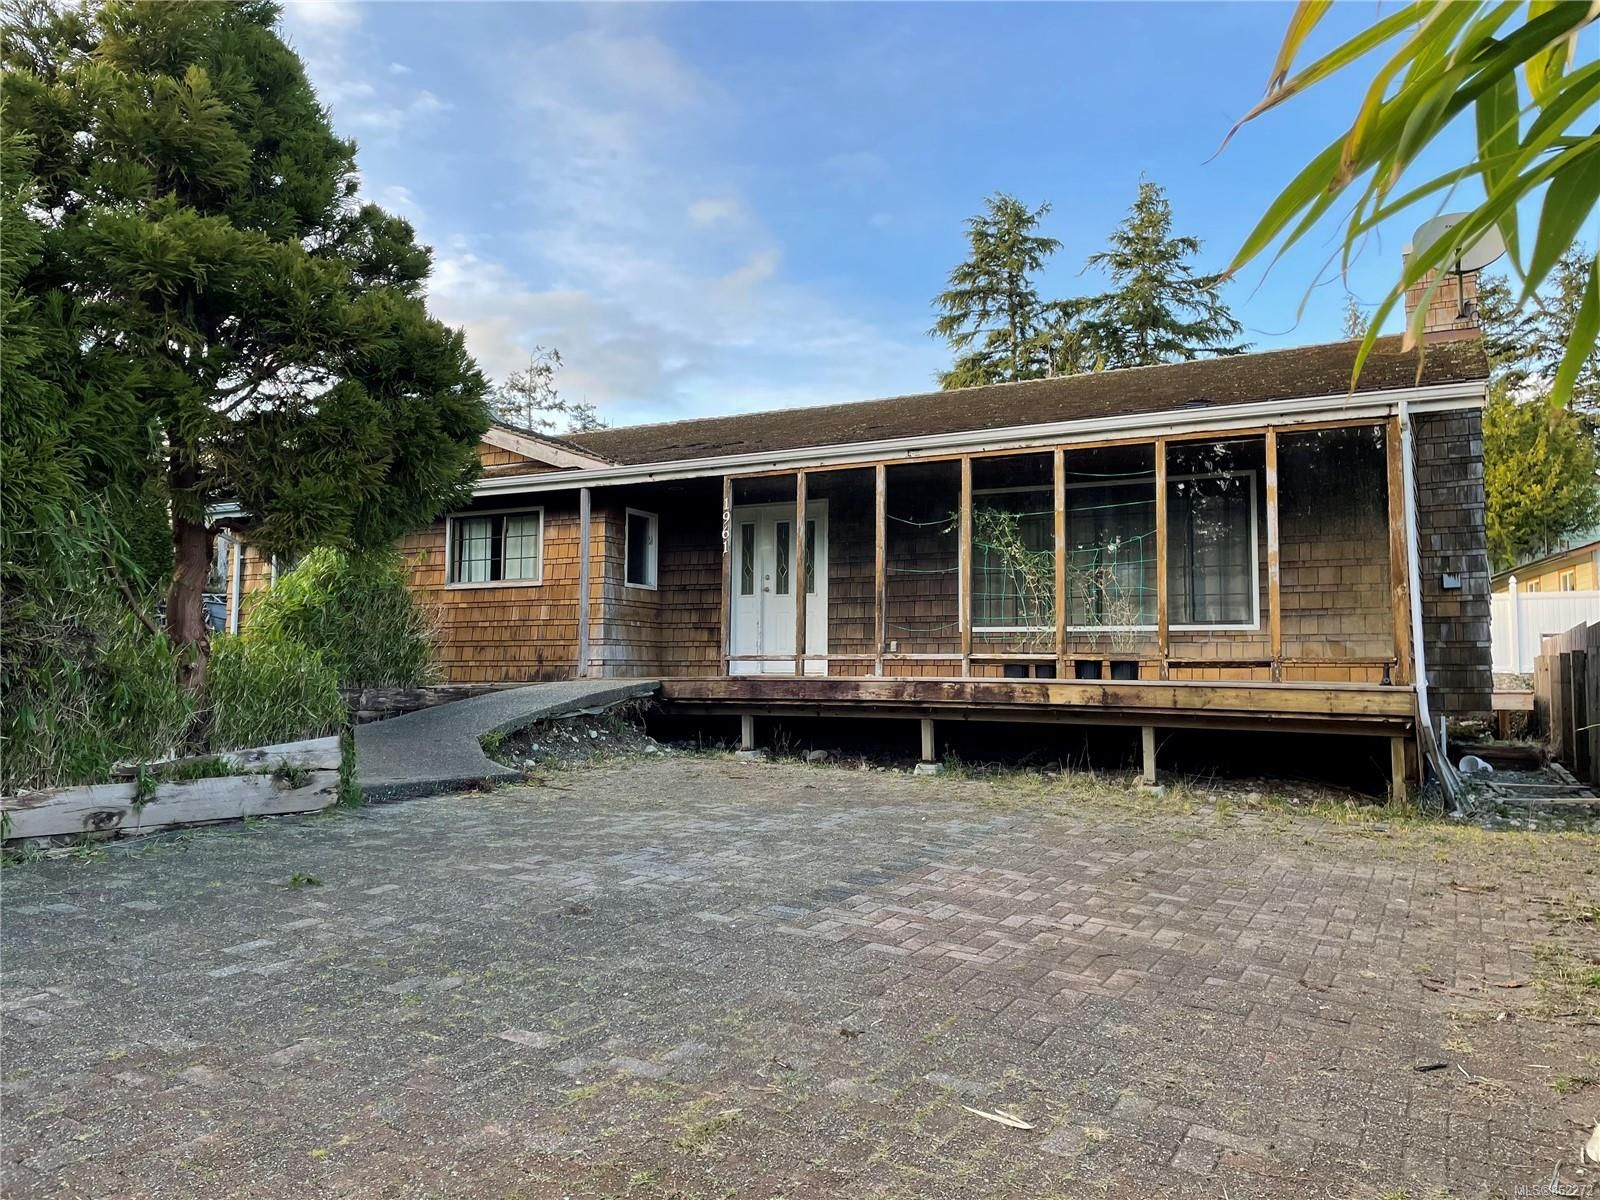 Main Photo: 1961 Cynamocka Rd in : PA Ucluelet Residential for sale (Port Alberni)  : MLS®# 862272